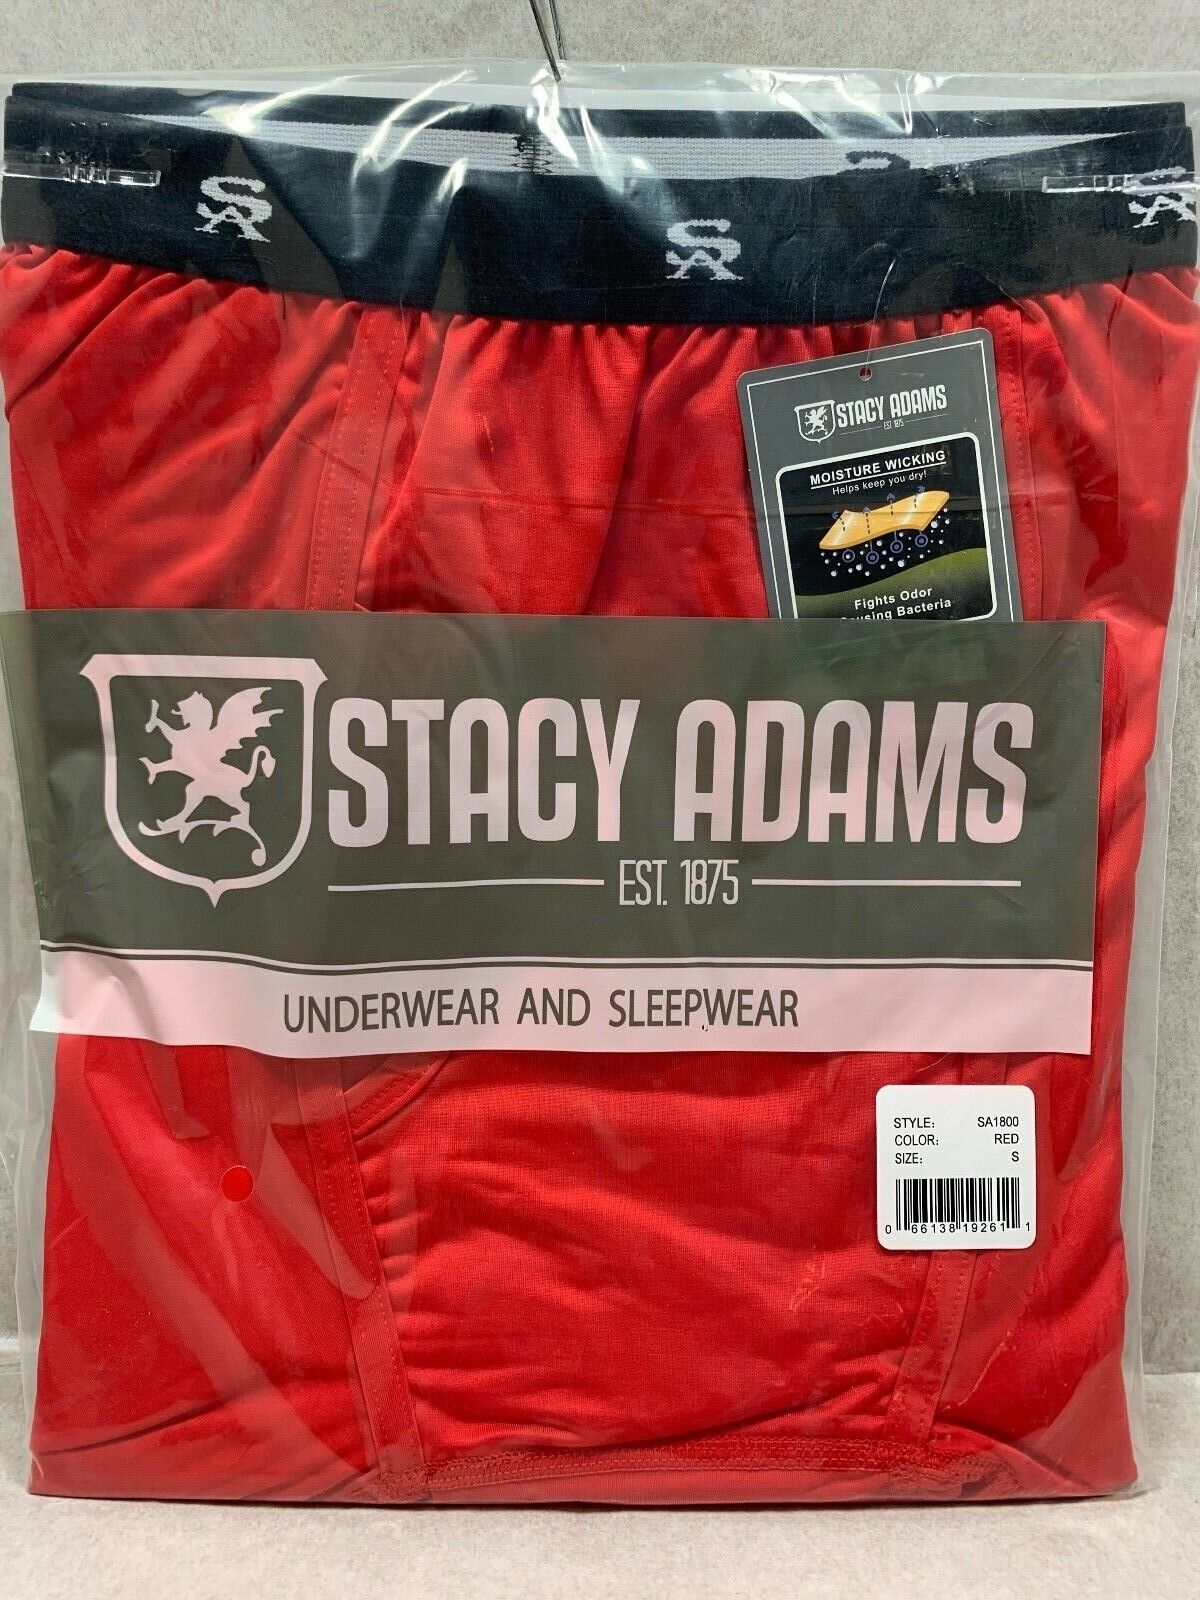 NEW POLY BAG MEN'S Stacy Adams Moisture Wicking Comfort Blend SHORT BRIEFS S-4XL Clothing, Shoes & Accessories